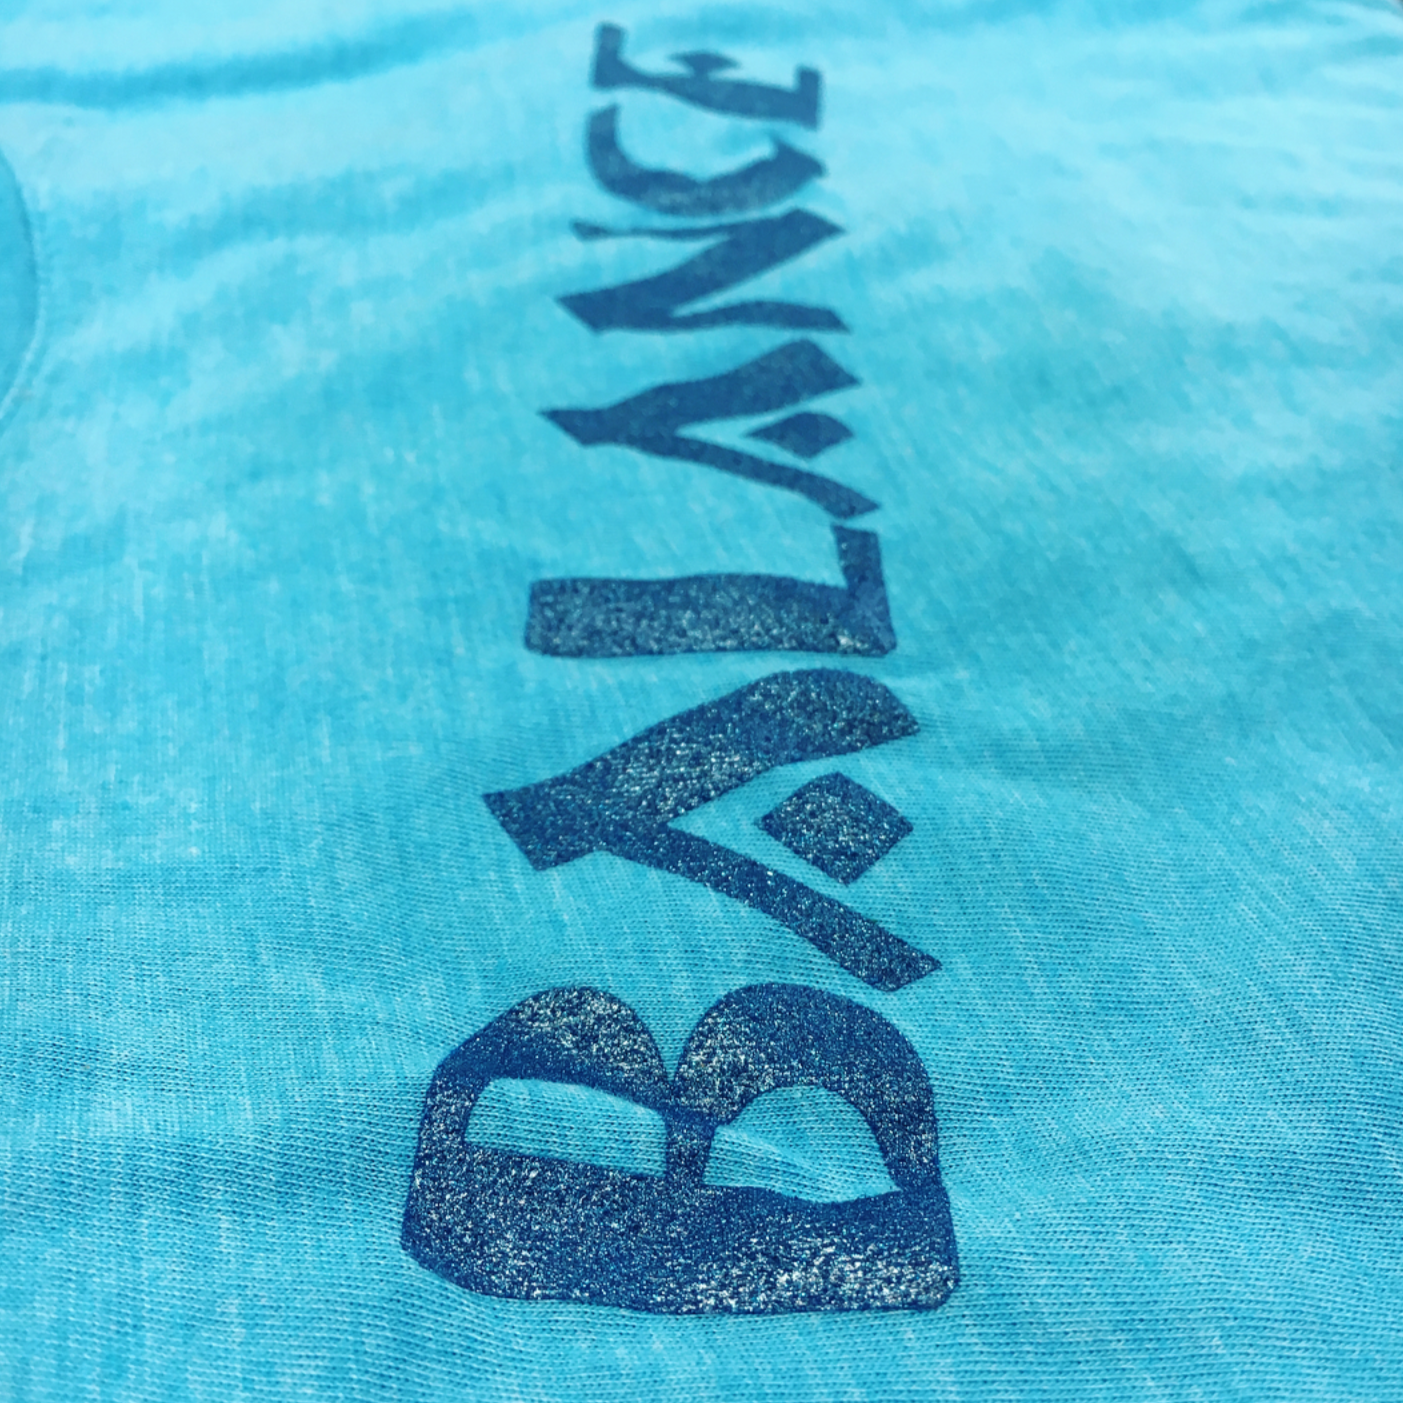 Shimmer prints - From Silver and Gold to our custom line of Electric Shimmer inks, make your next print stand out.